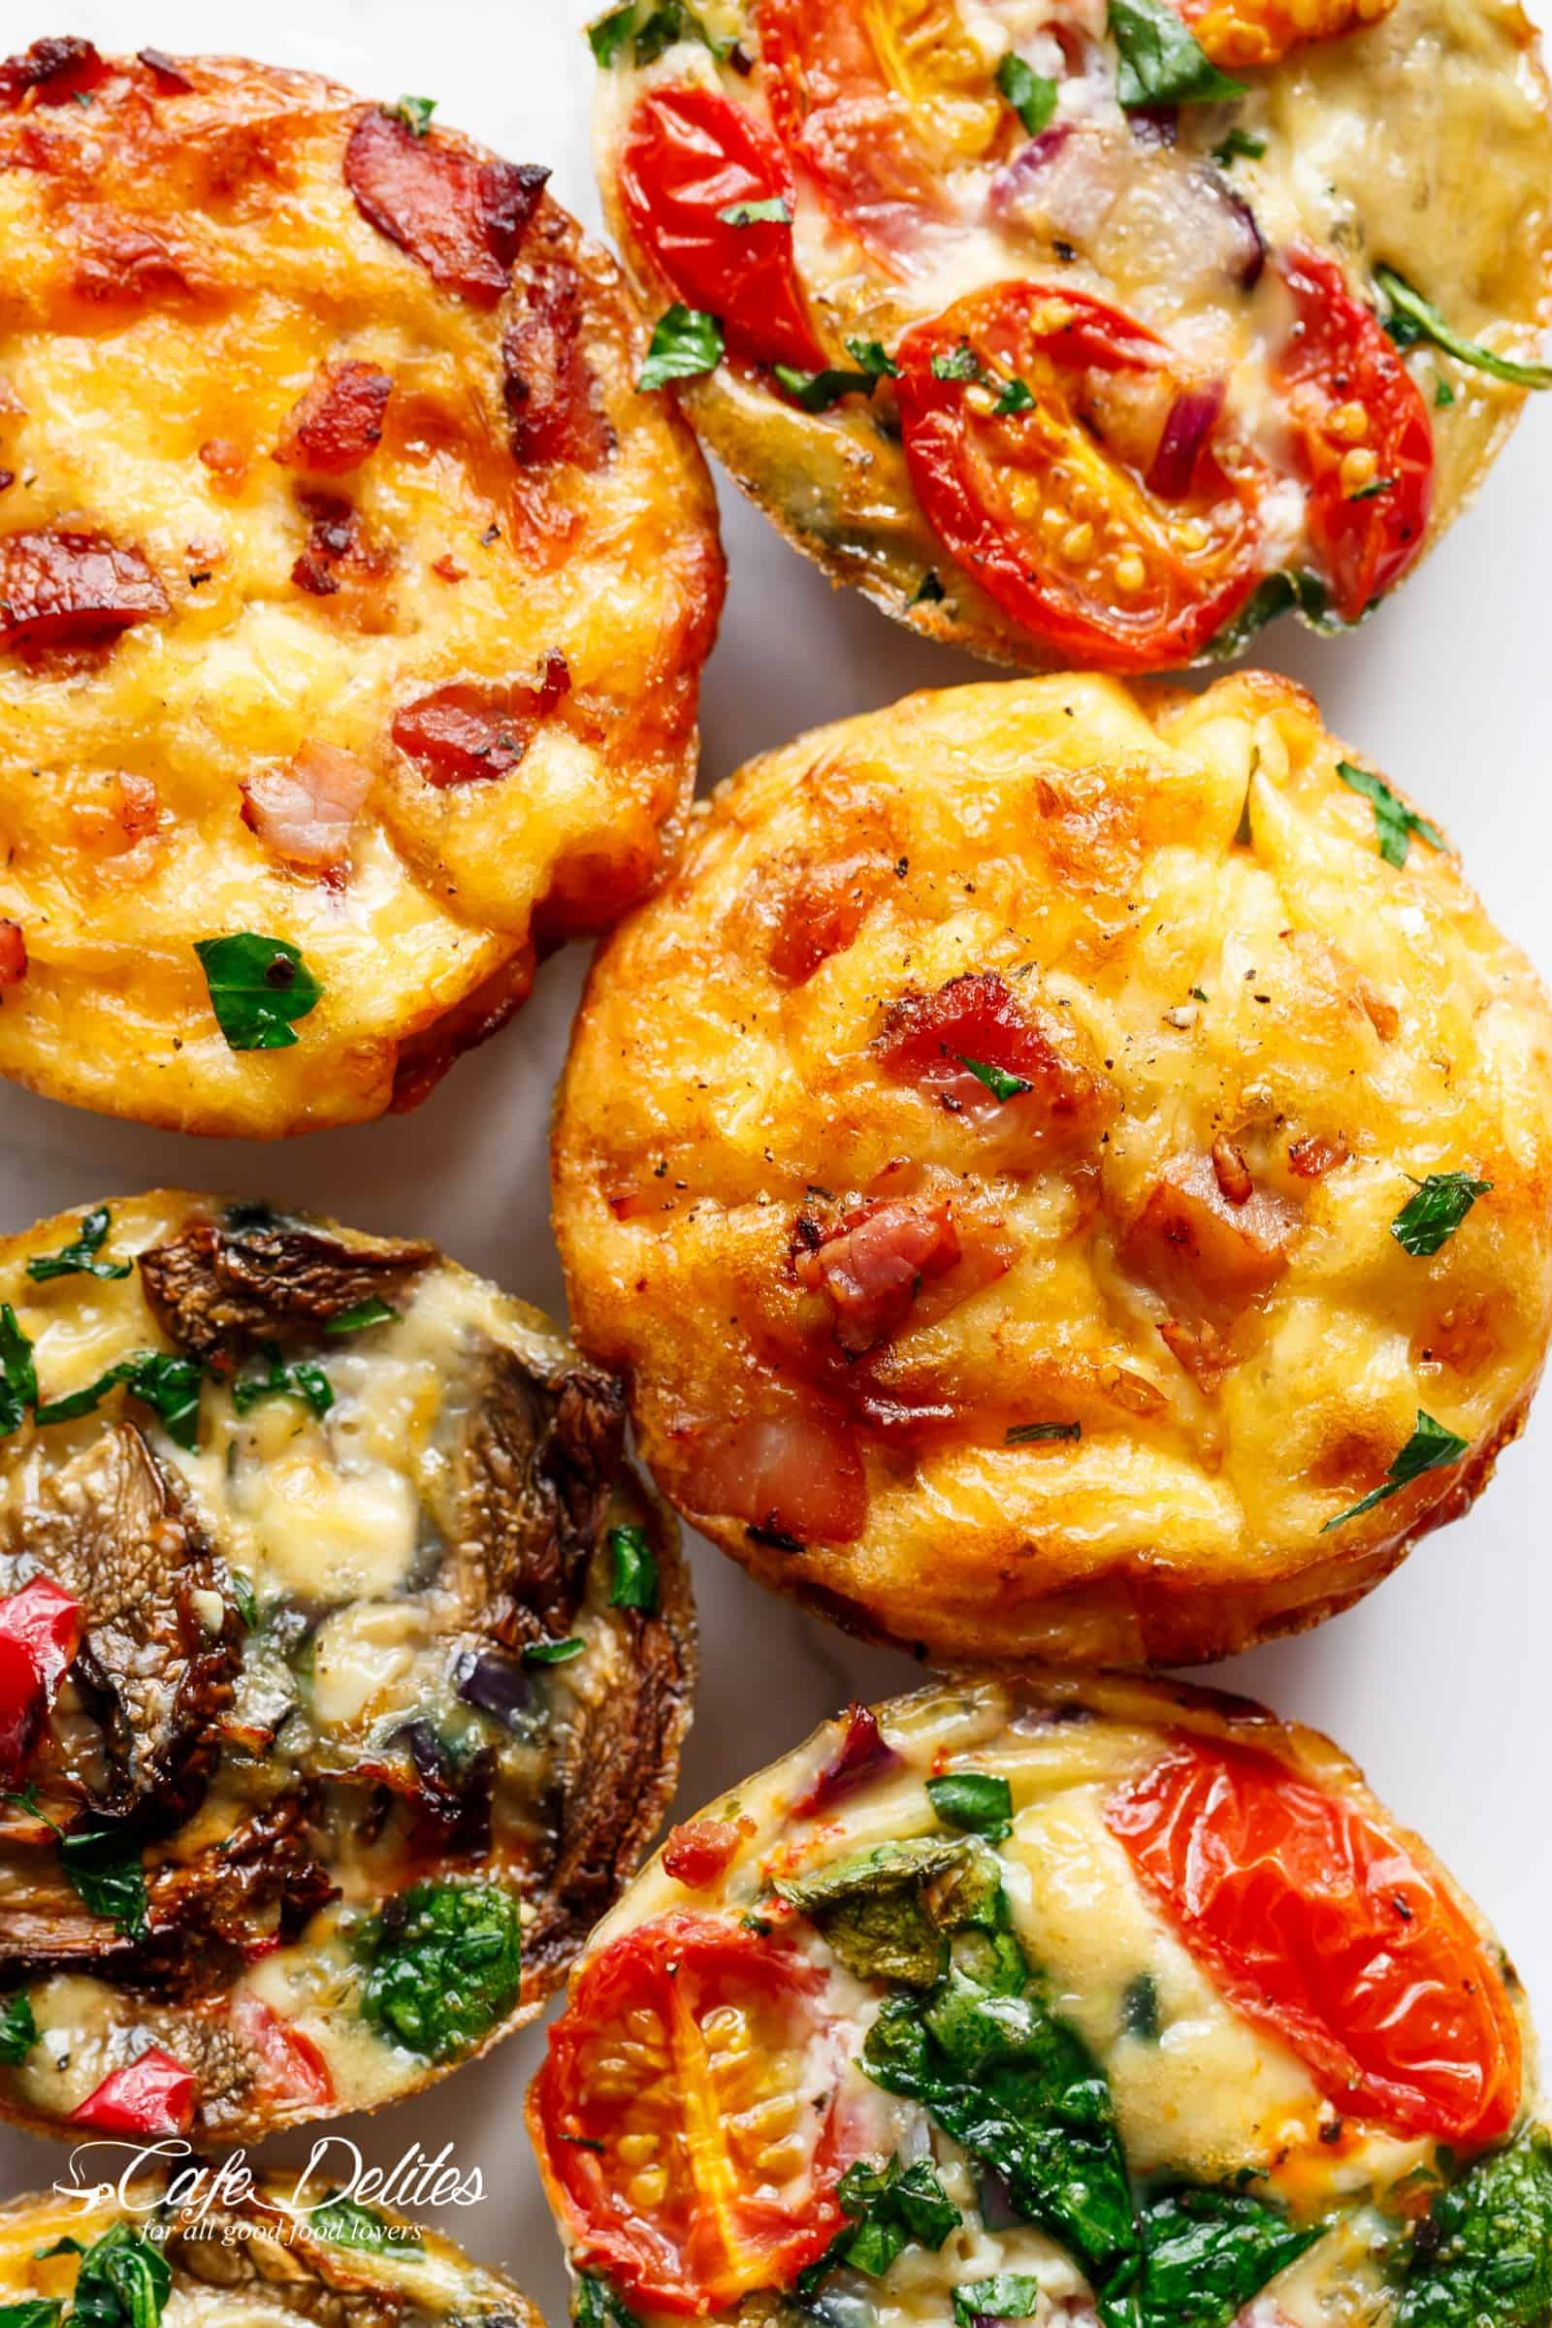 Breakfast Egg Muffins 9 Ways - Recipes Egg Cups